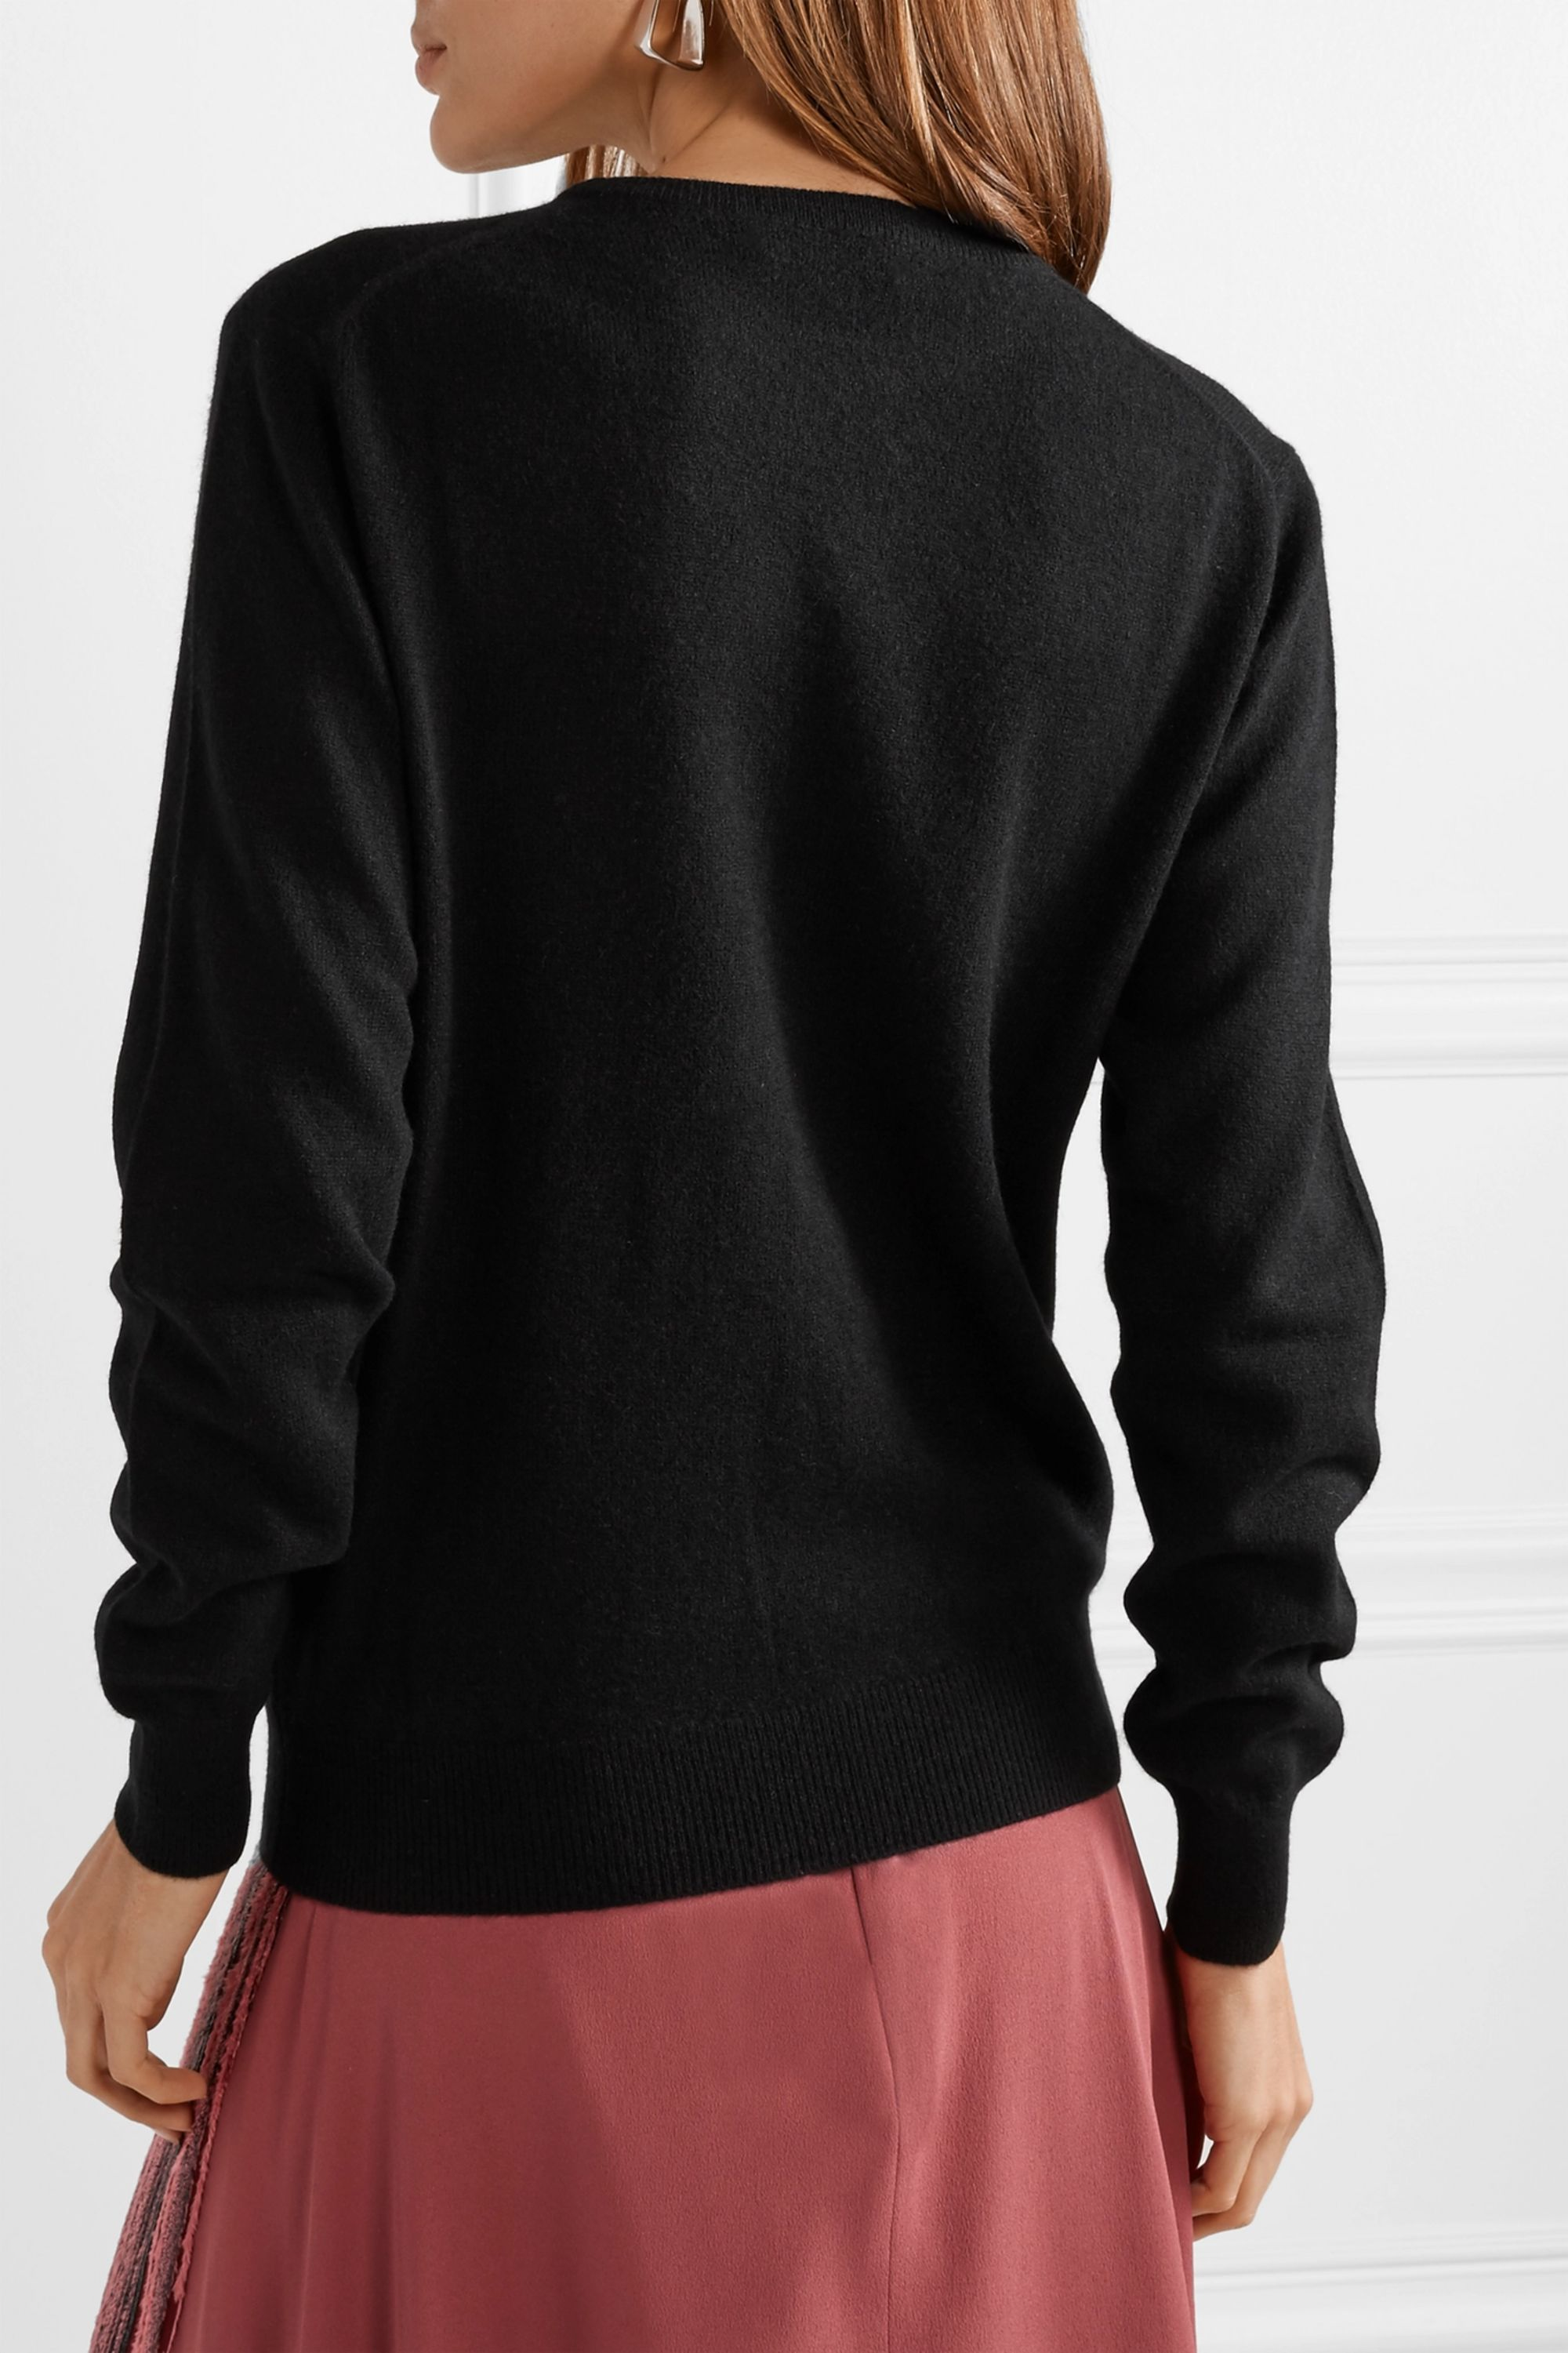 Lingua Franca That Thing embroidered cashmere sweater